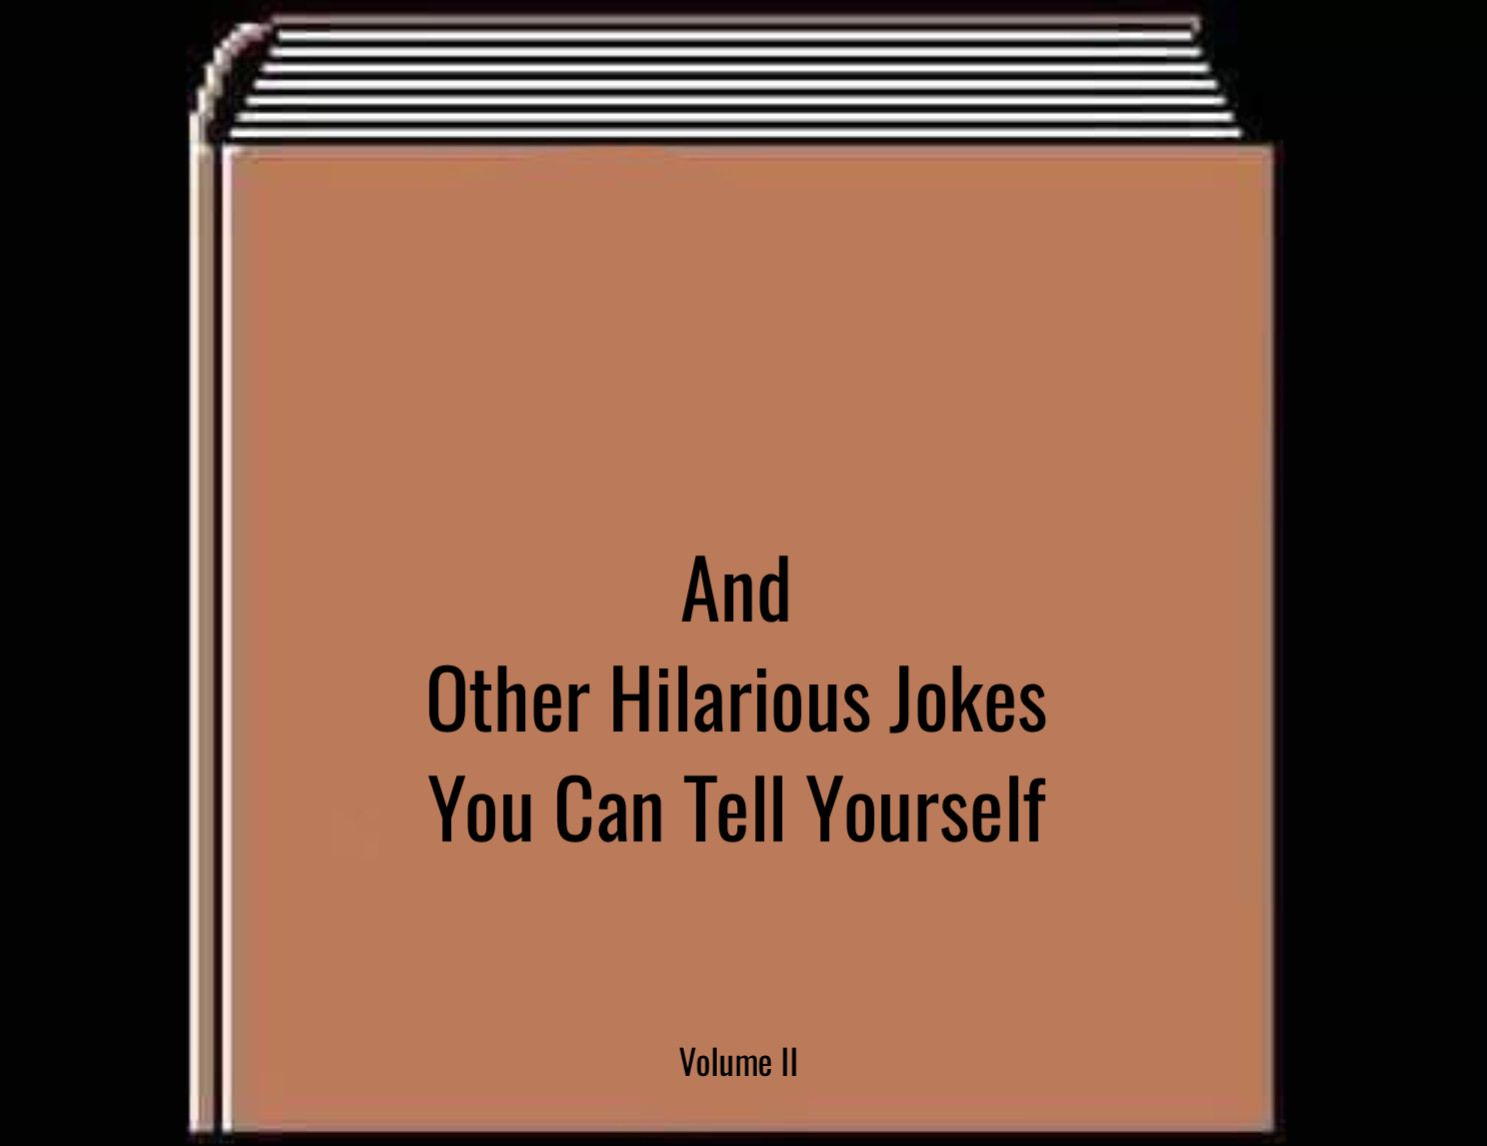 And Other Hilarious Jokes You Can Tell Yourself Hd Blank Meme